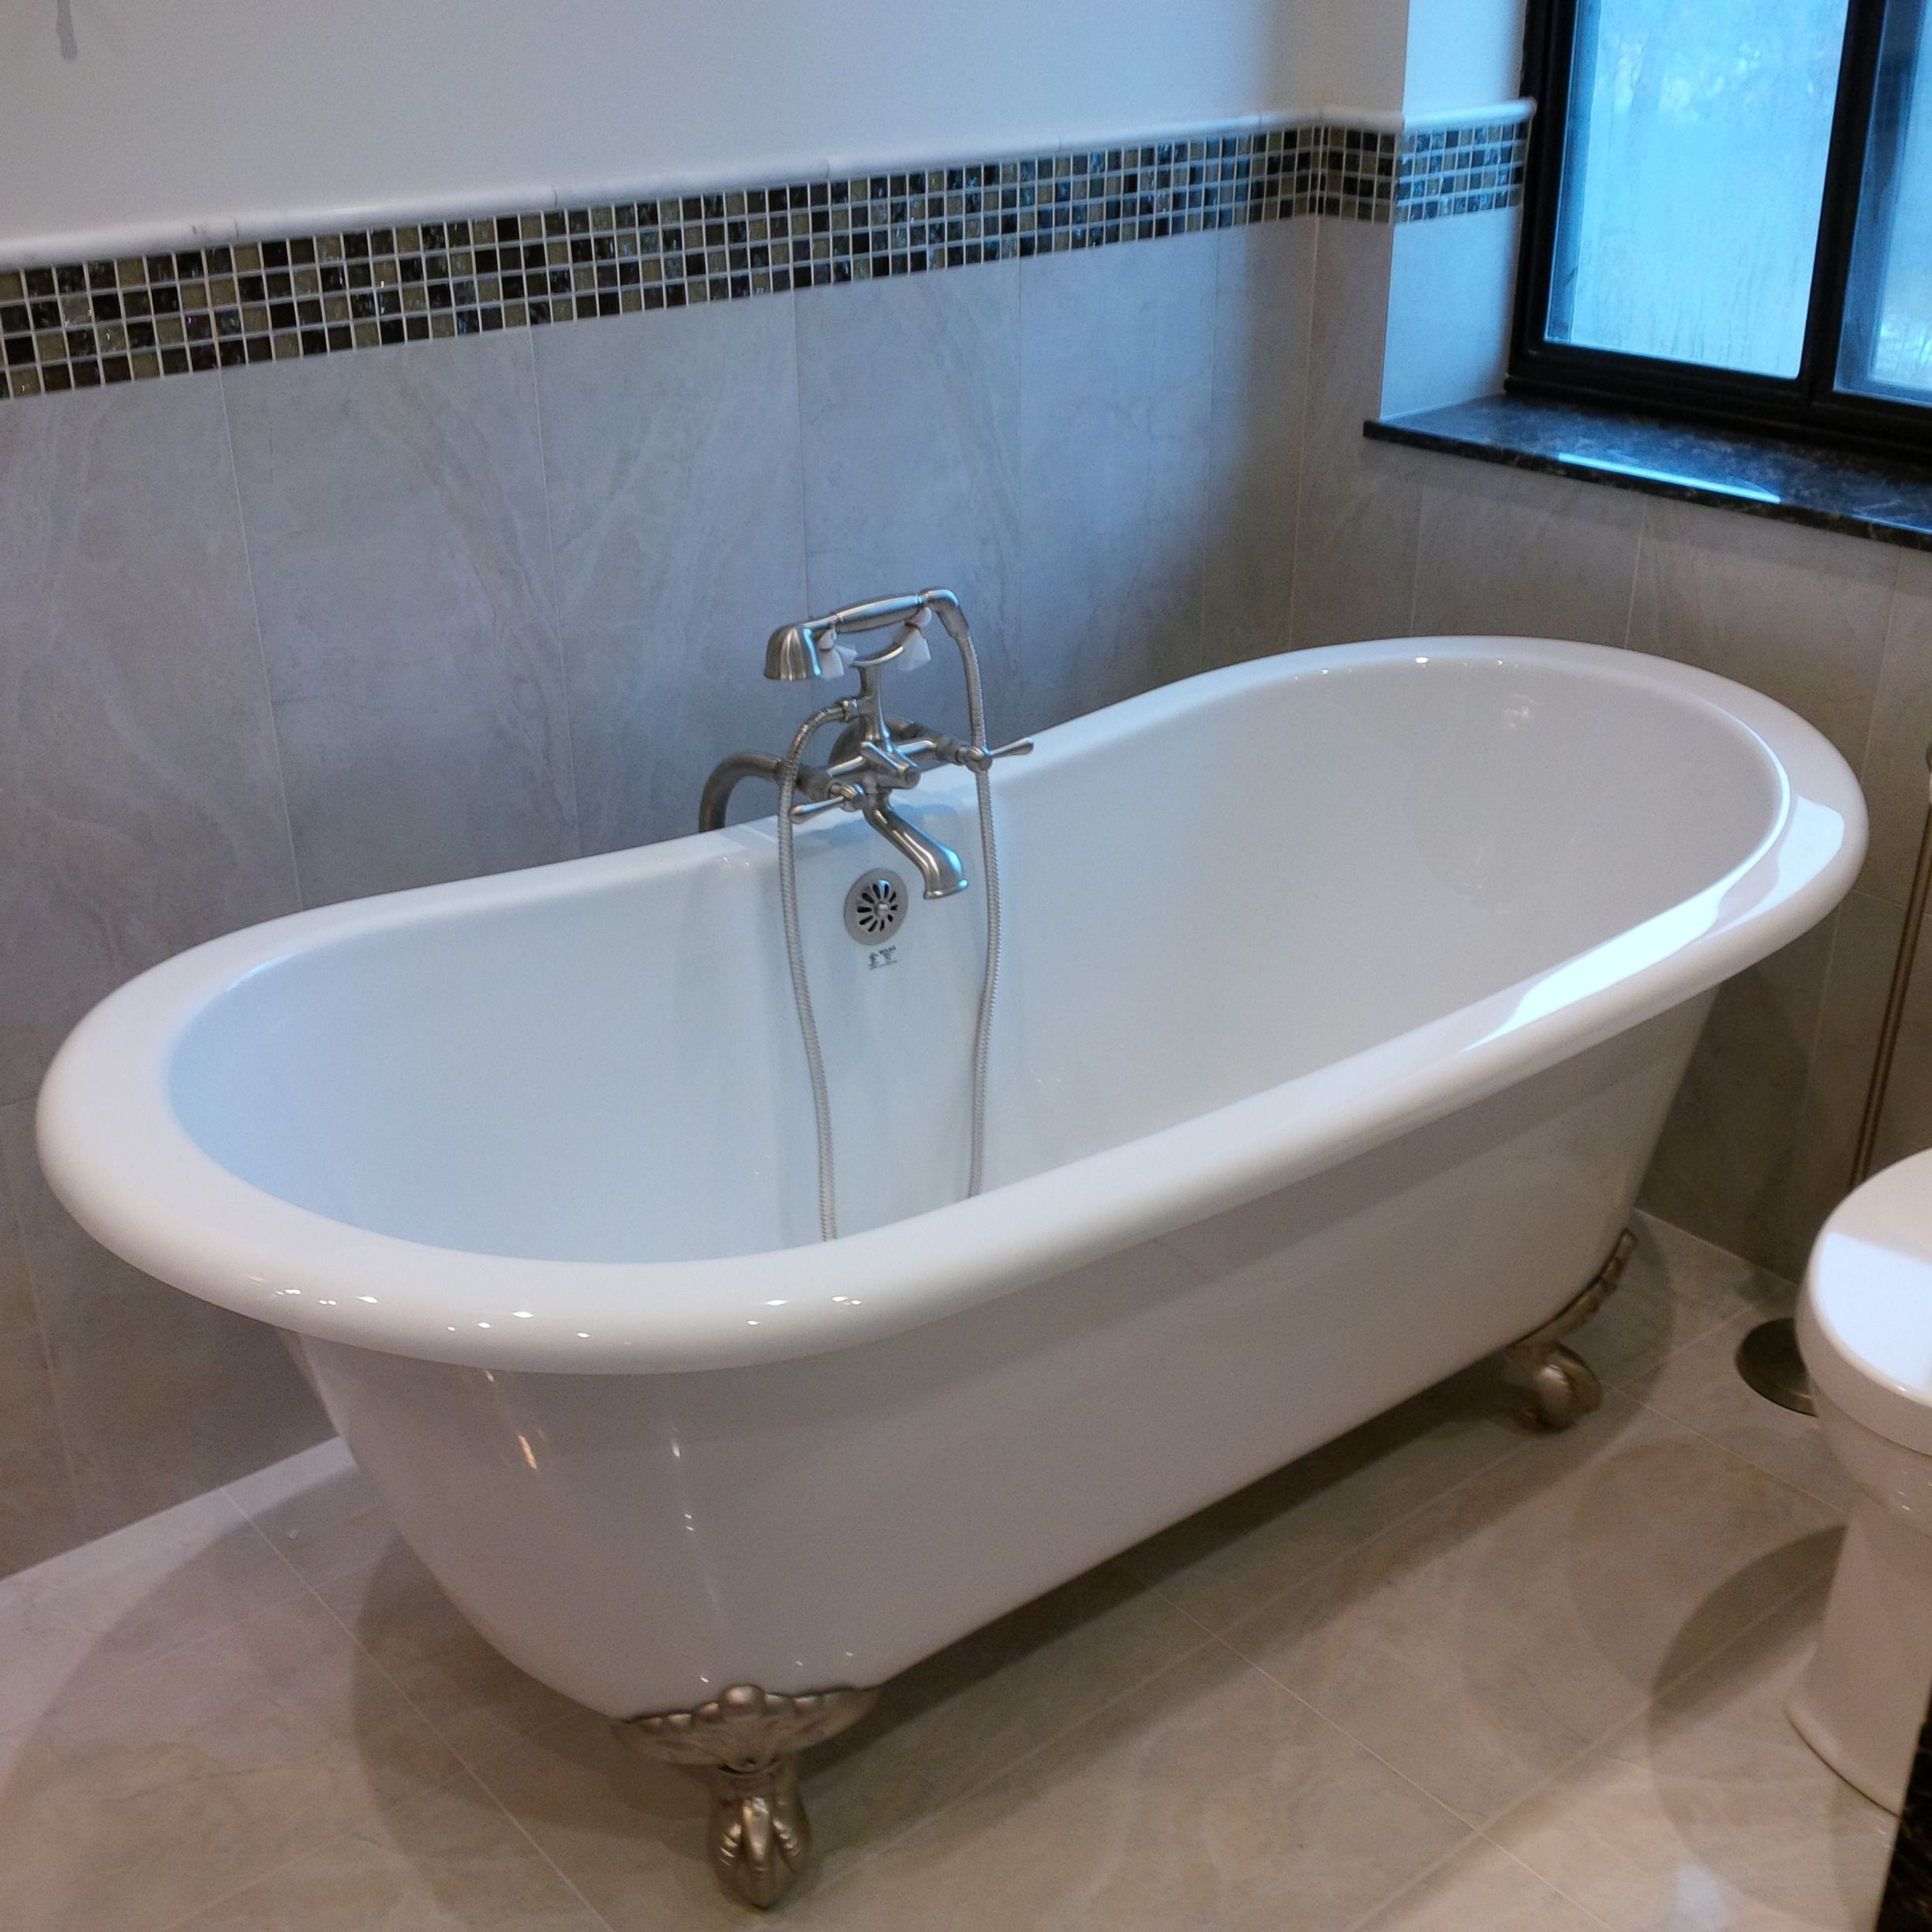 MAAX Versailles Freestanding Clawfoot Tub, Riobel Manhattan Tub ...